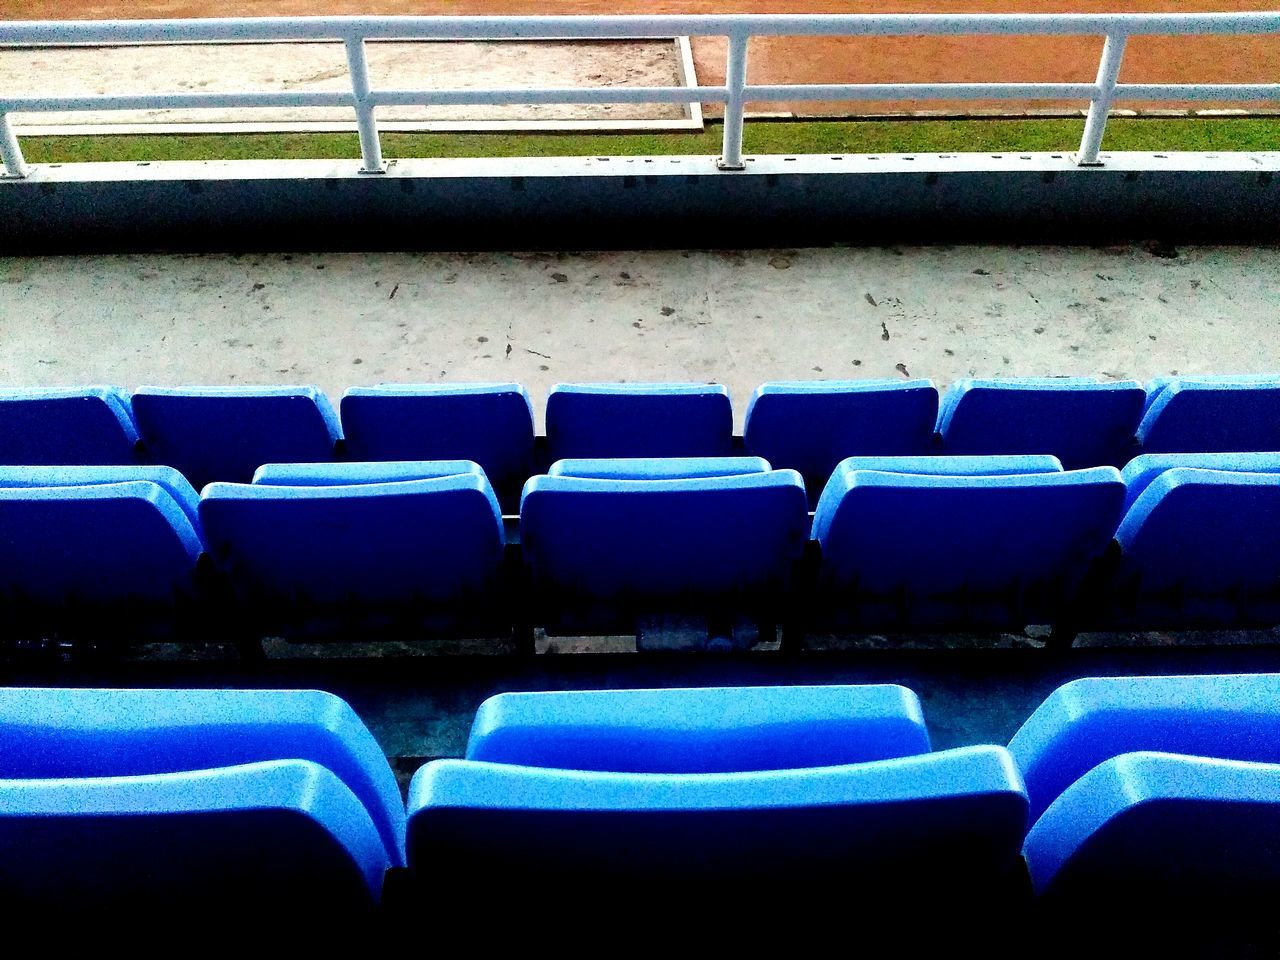 Chair Seat In A Row Blue Arts Culture And Entertainment Folding Chair No People Auditorium Indoors  Day Sriwijayafc Tribune West Stadion Gelora Sriwijaya Jakabaring - Palembang, Indonesia. EyeEm Diversity EyeEm Diversity Art Is Everywhere